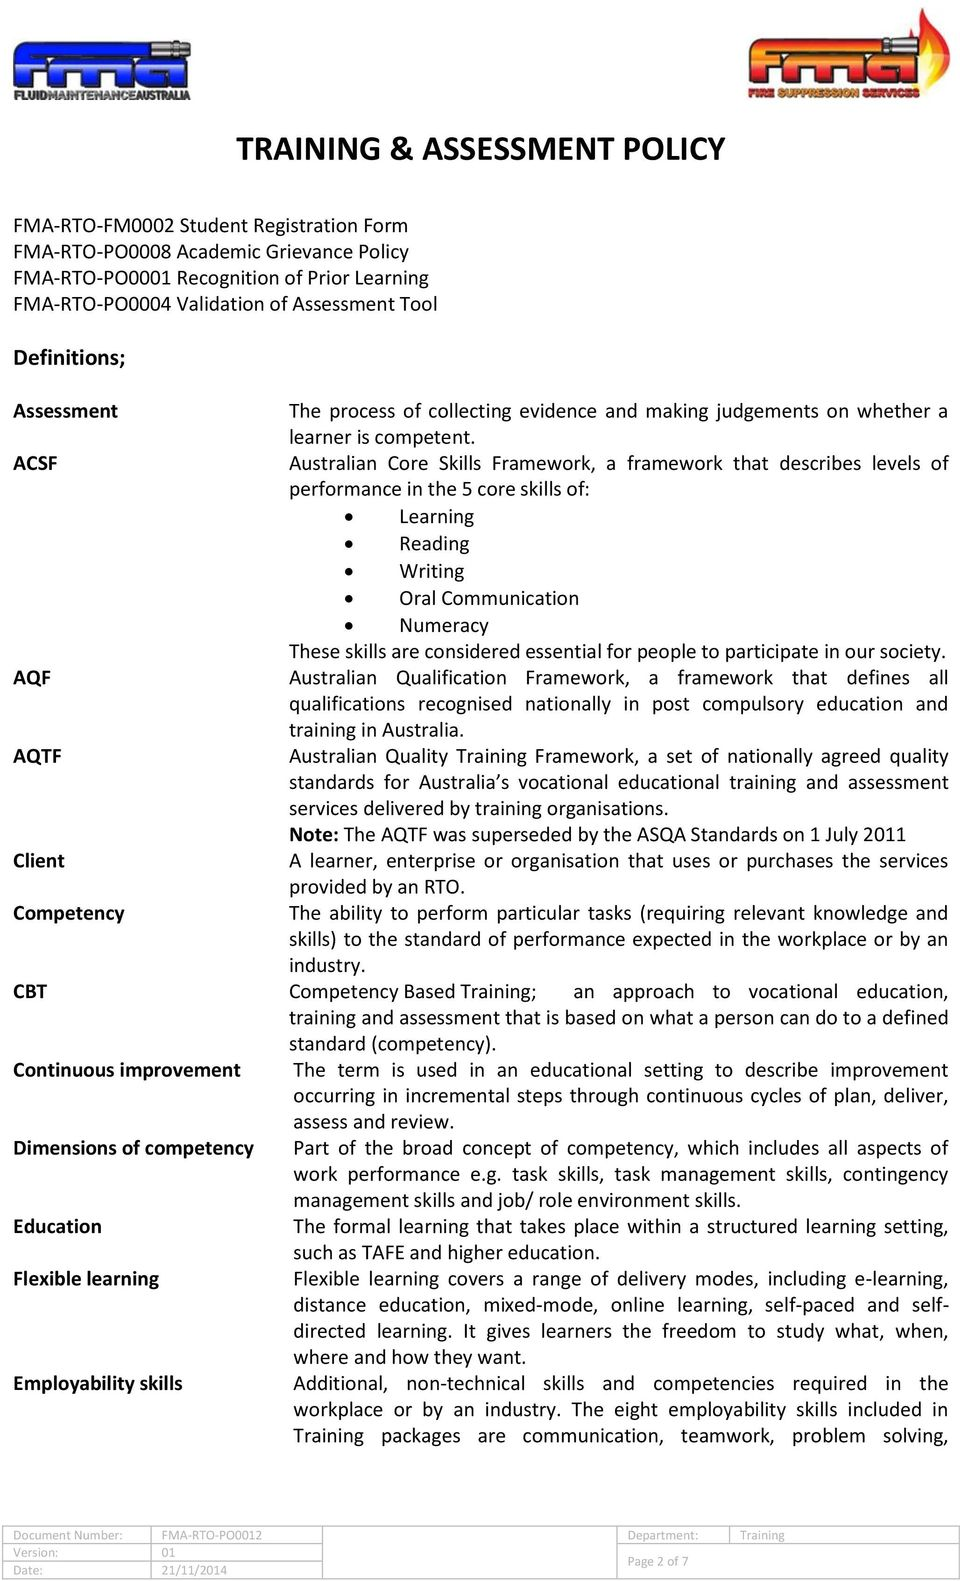 ACSF Australian Core Skills Framework, a framework that describes levels of performance in the 5 core skills of: Learning Reading Writing Oral Communication Numeracy These skills are considered